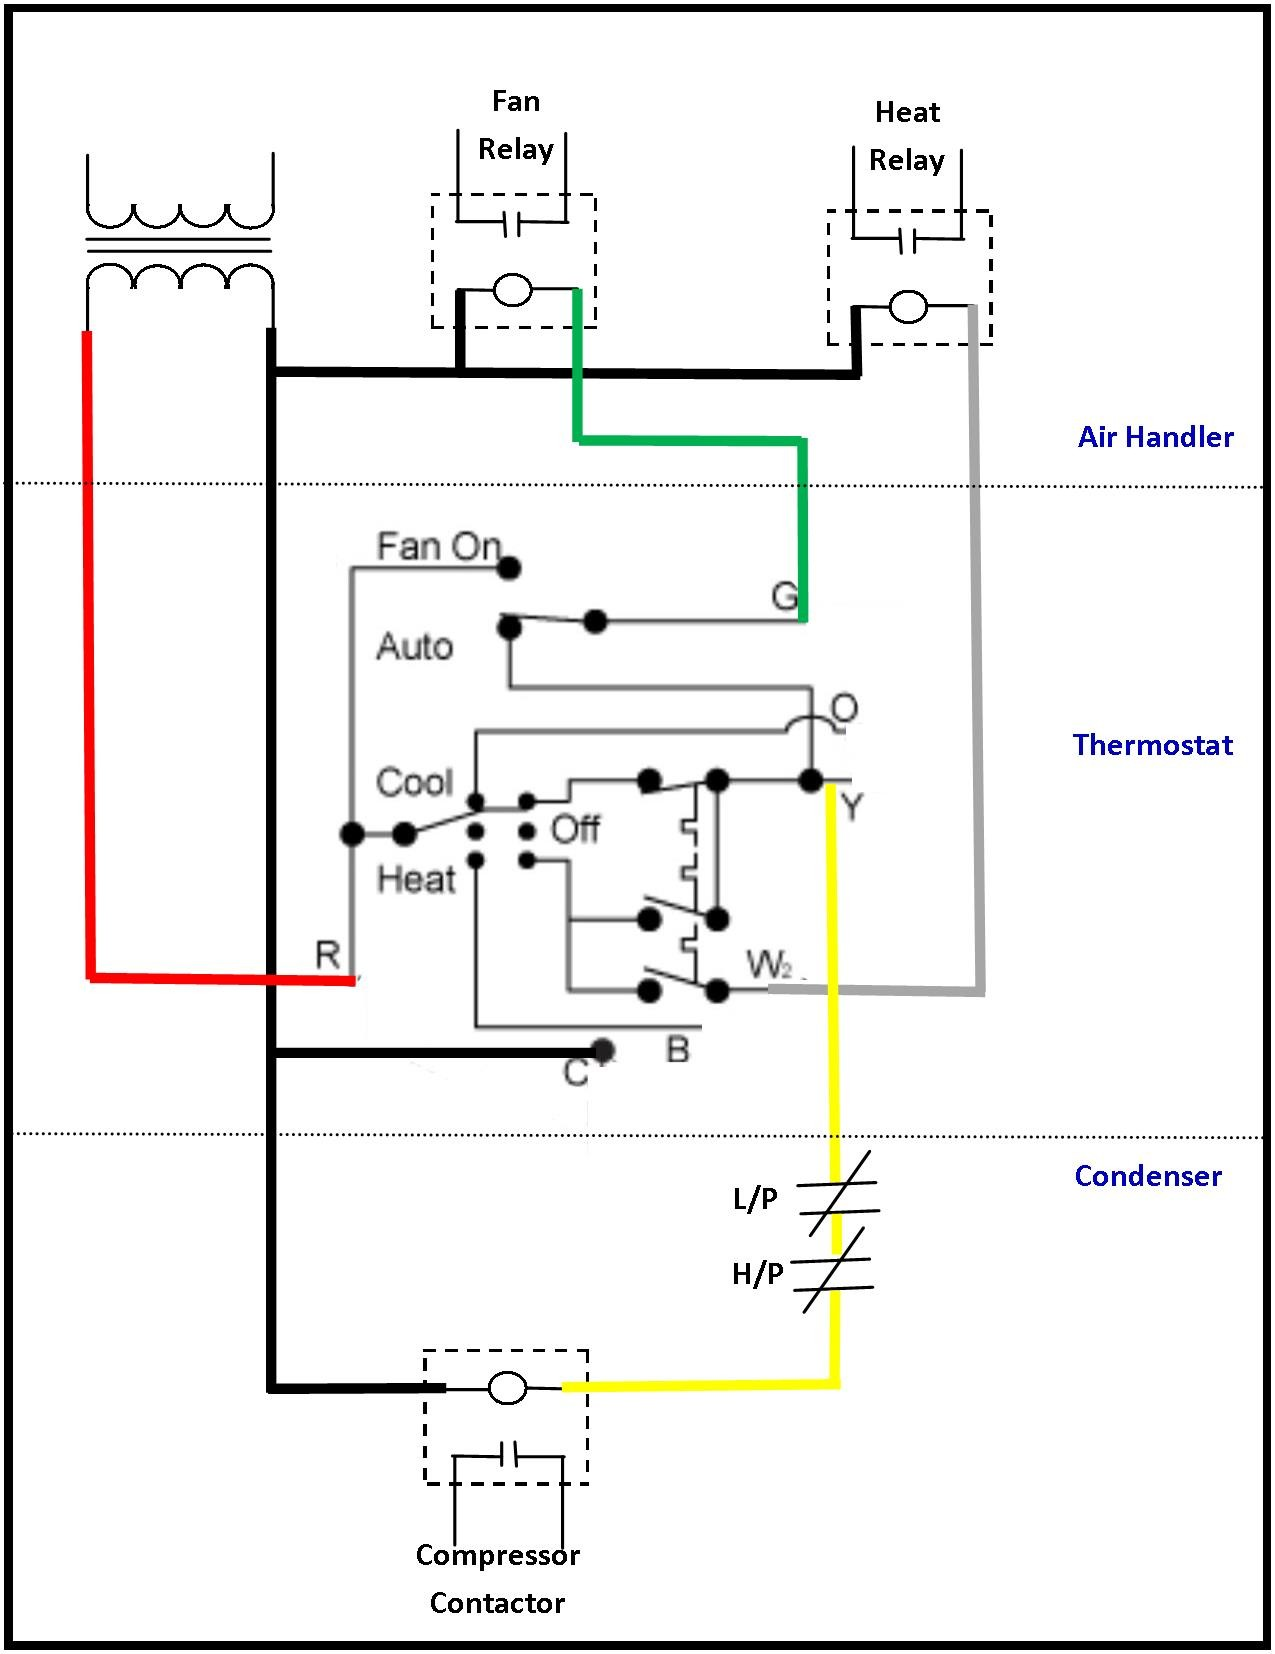 Double Pole thermostat Wiring Diagram Unique Wiring Diagram for A 120 Volt thermostat Line Voltage Of Double Pole thermostat Wiring Diagram